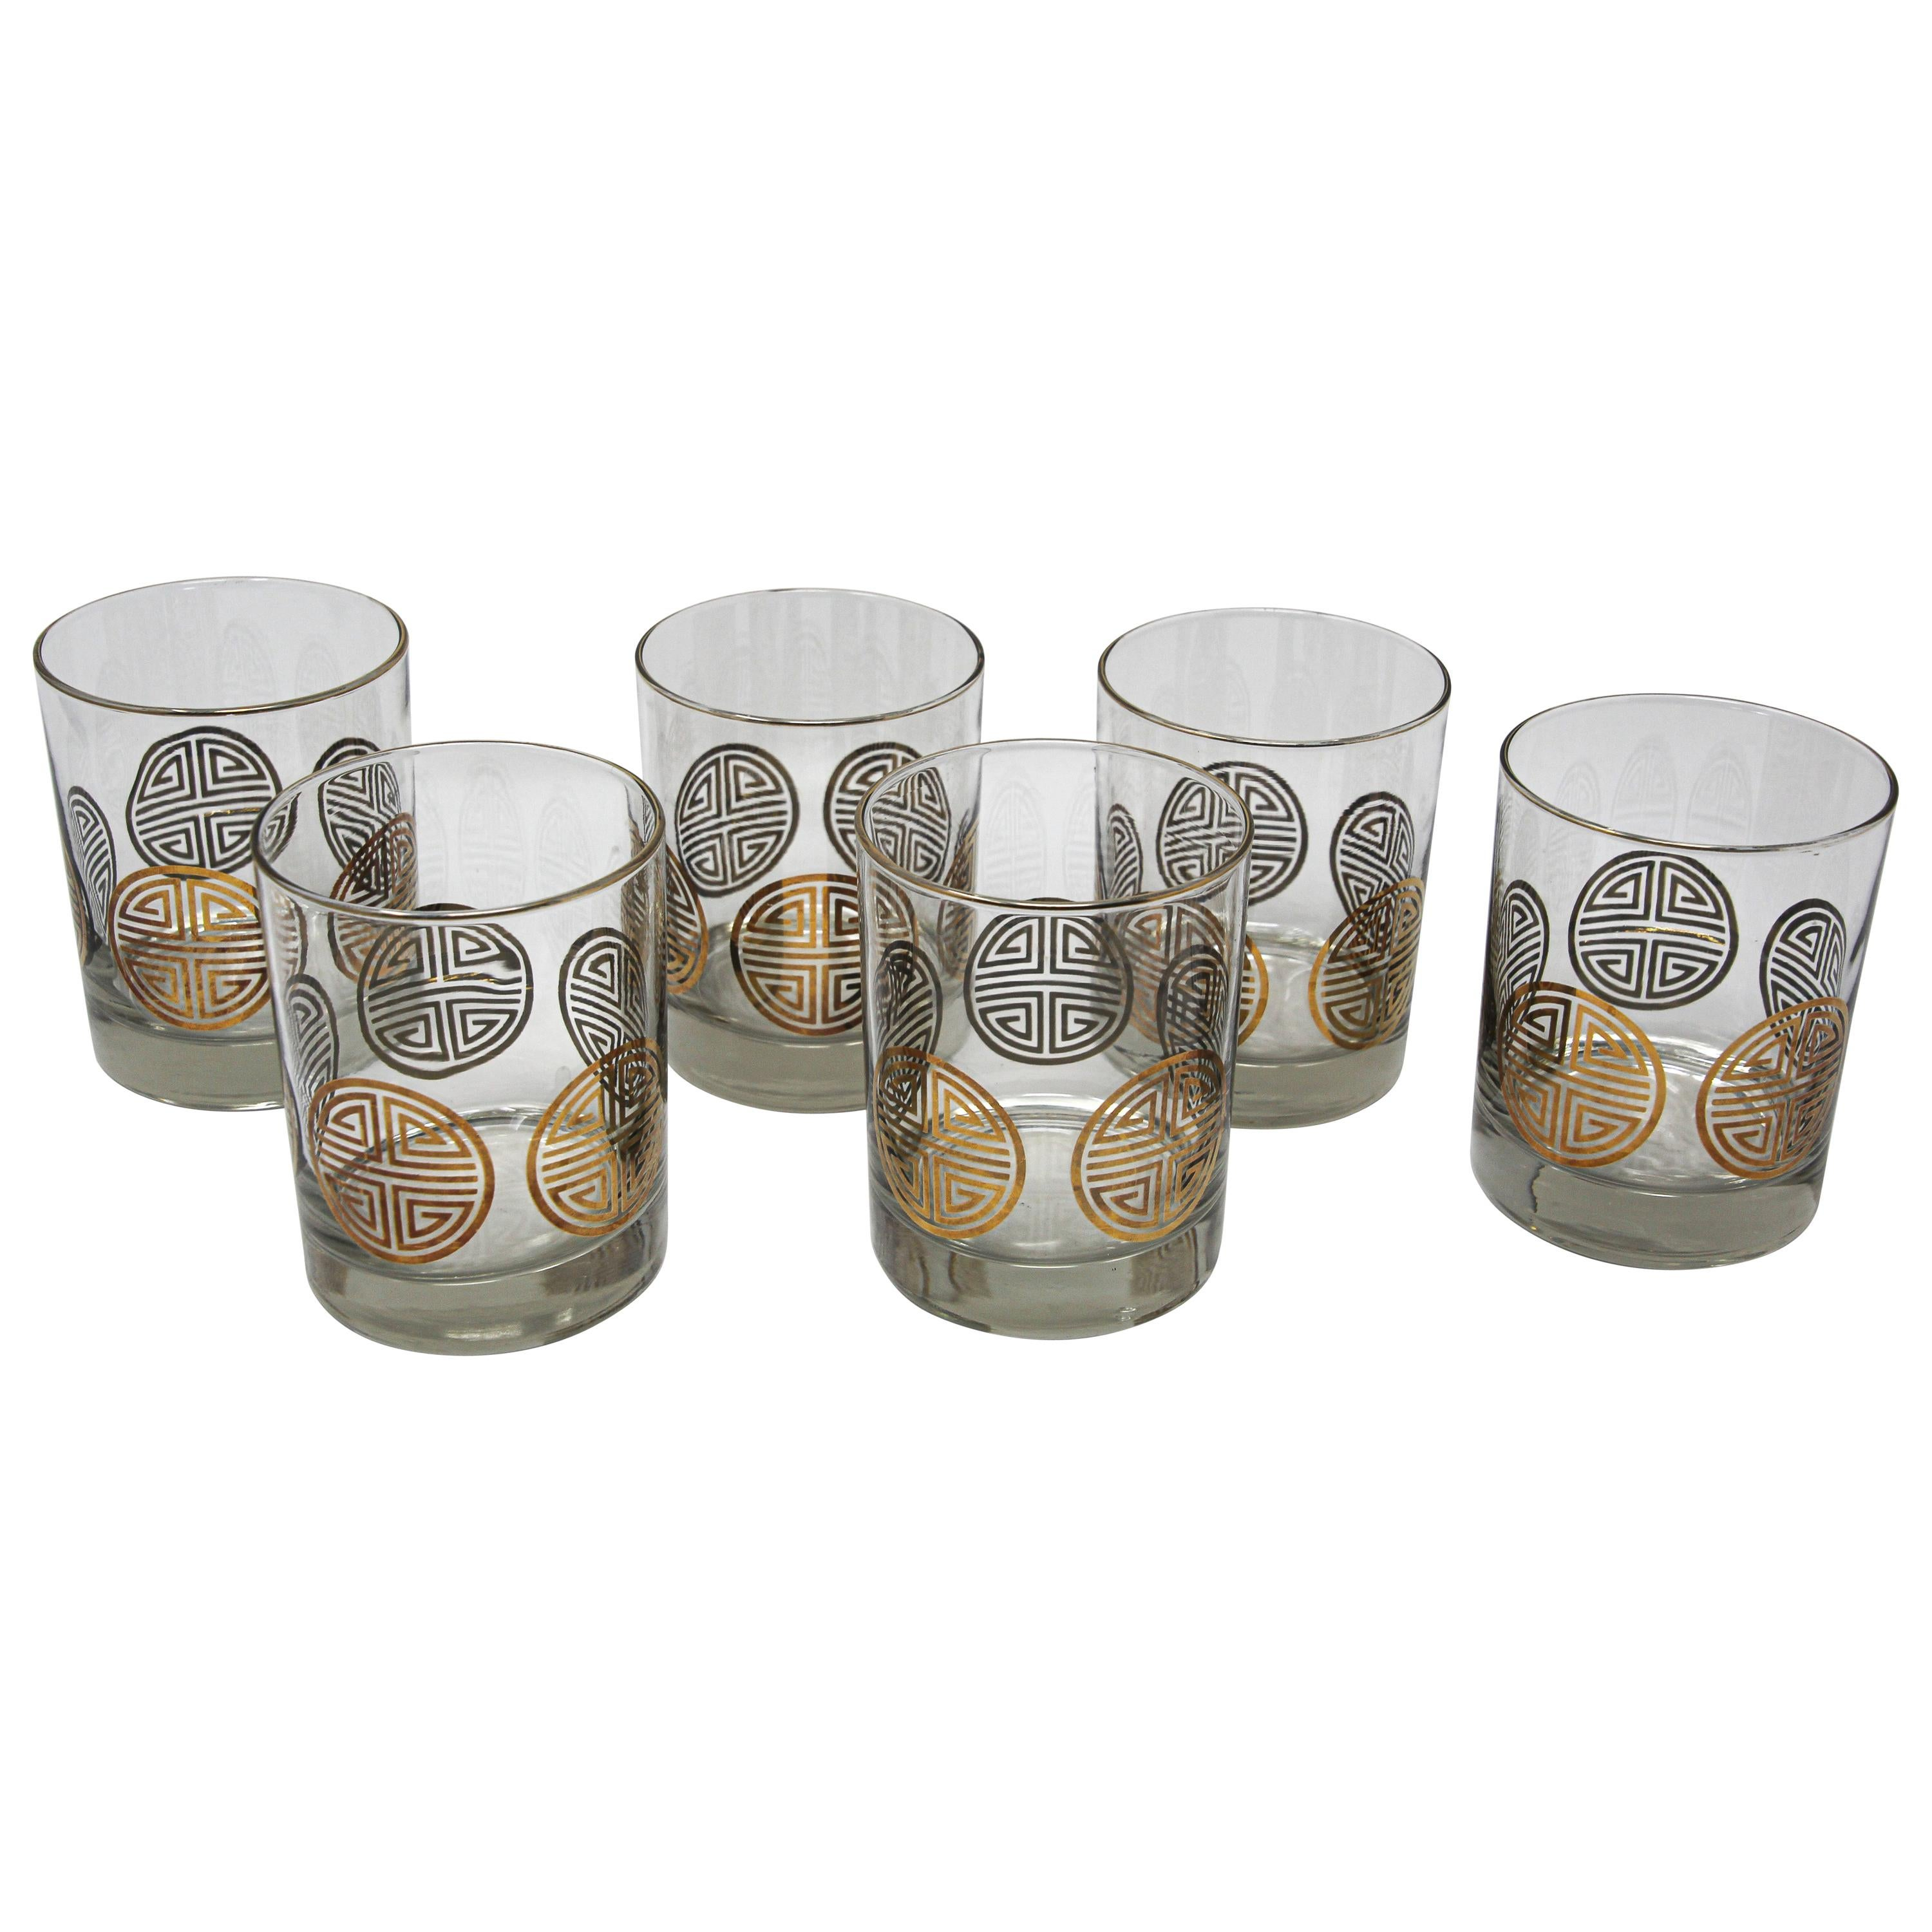 Vintage Set of Six Rock Glasses with Gold Pattern by Georges Briard